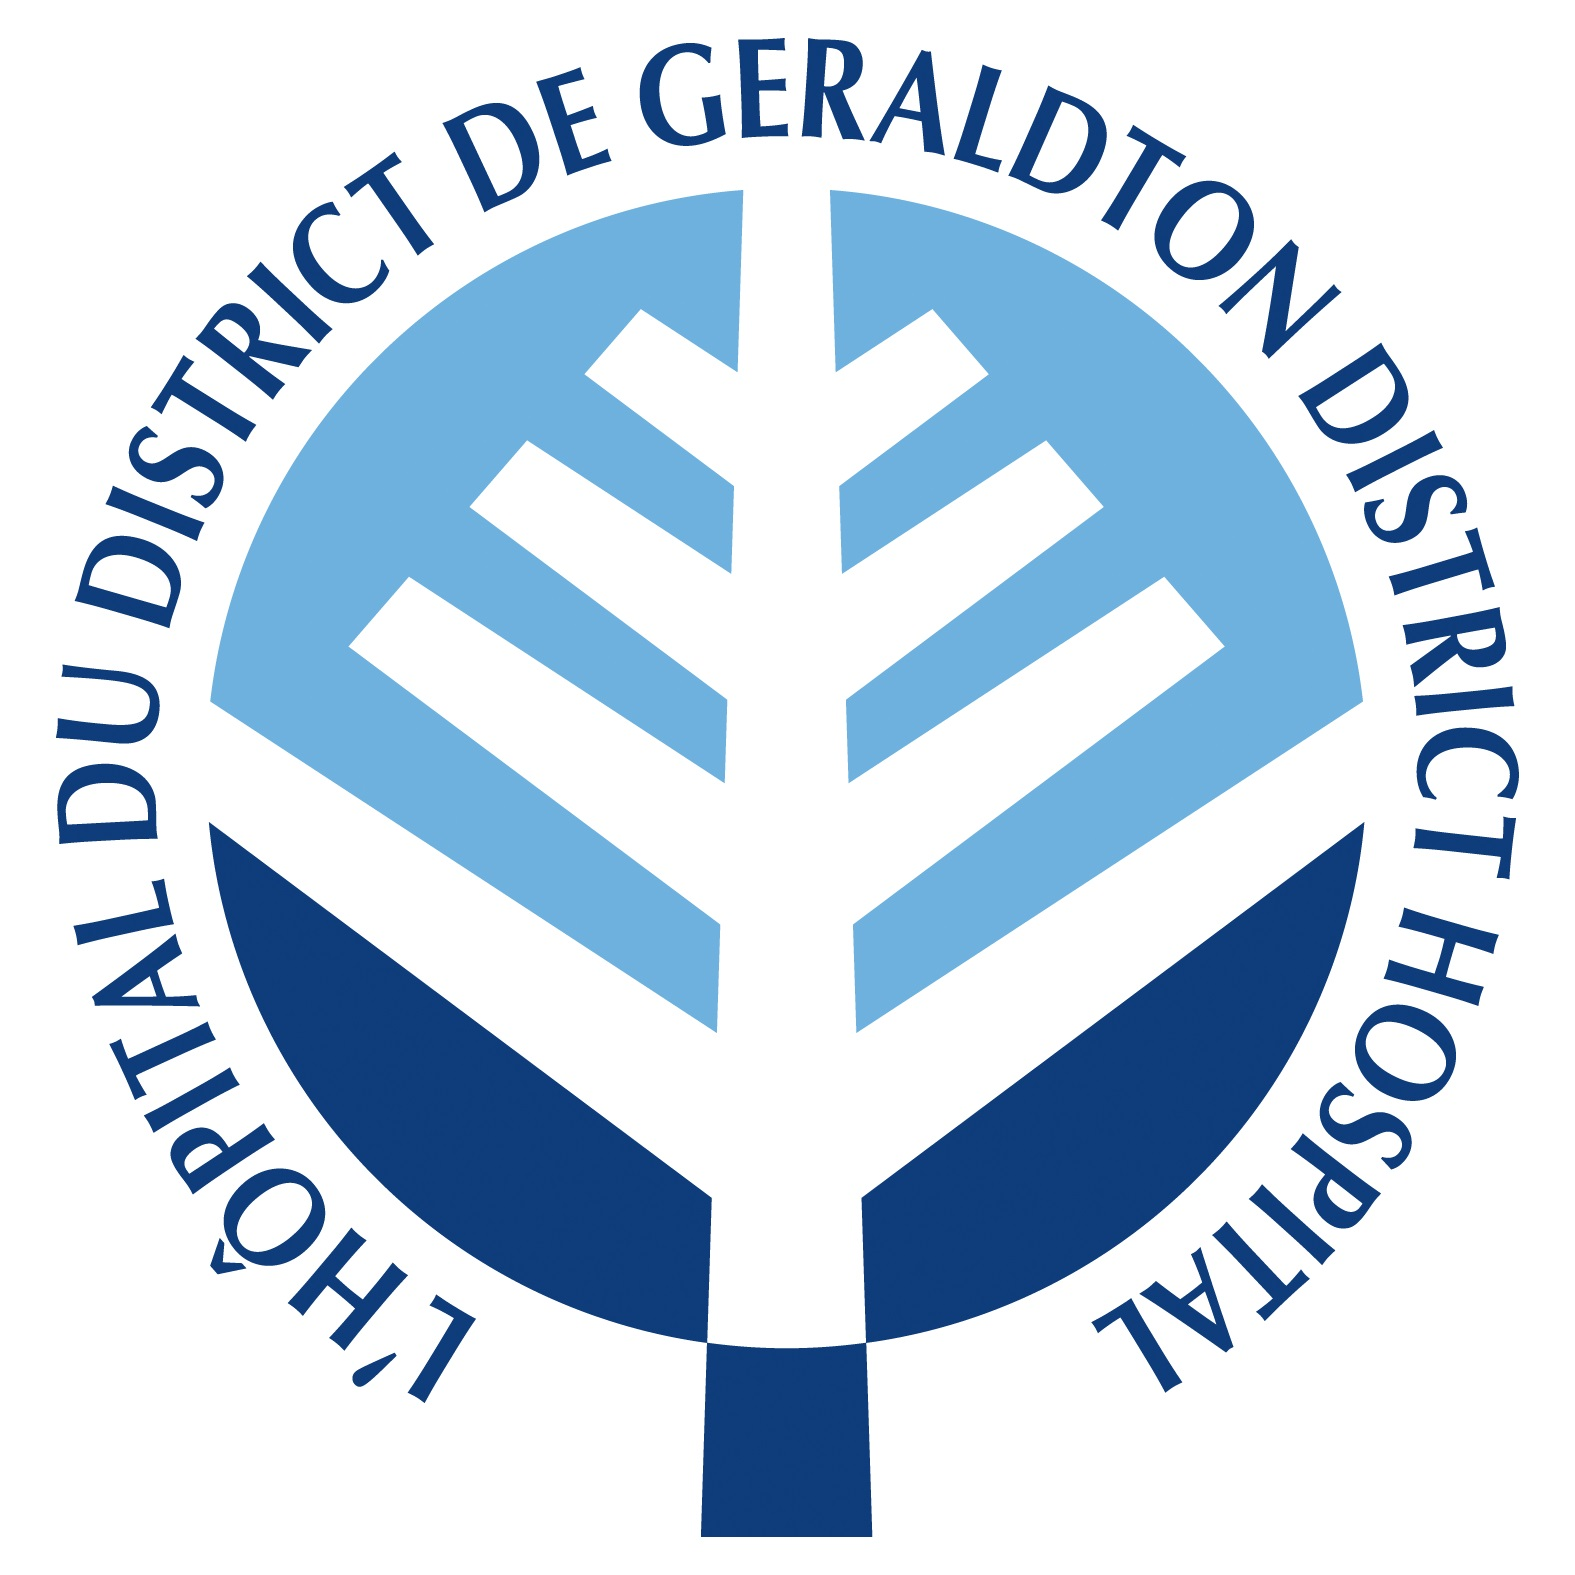 Use This One GeraldtonDH LOGO logo